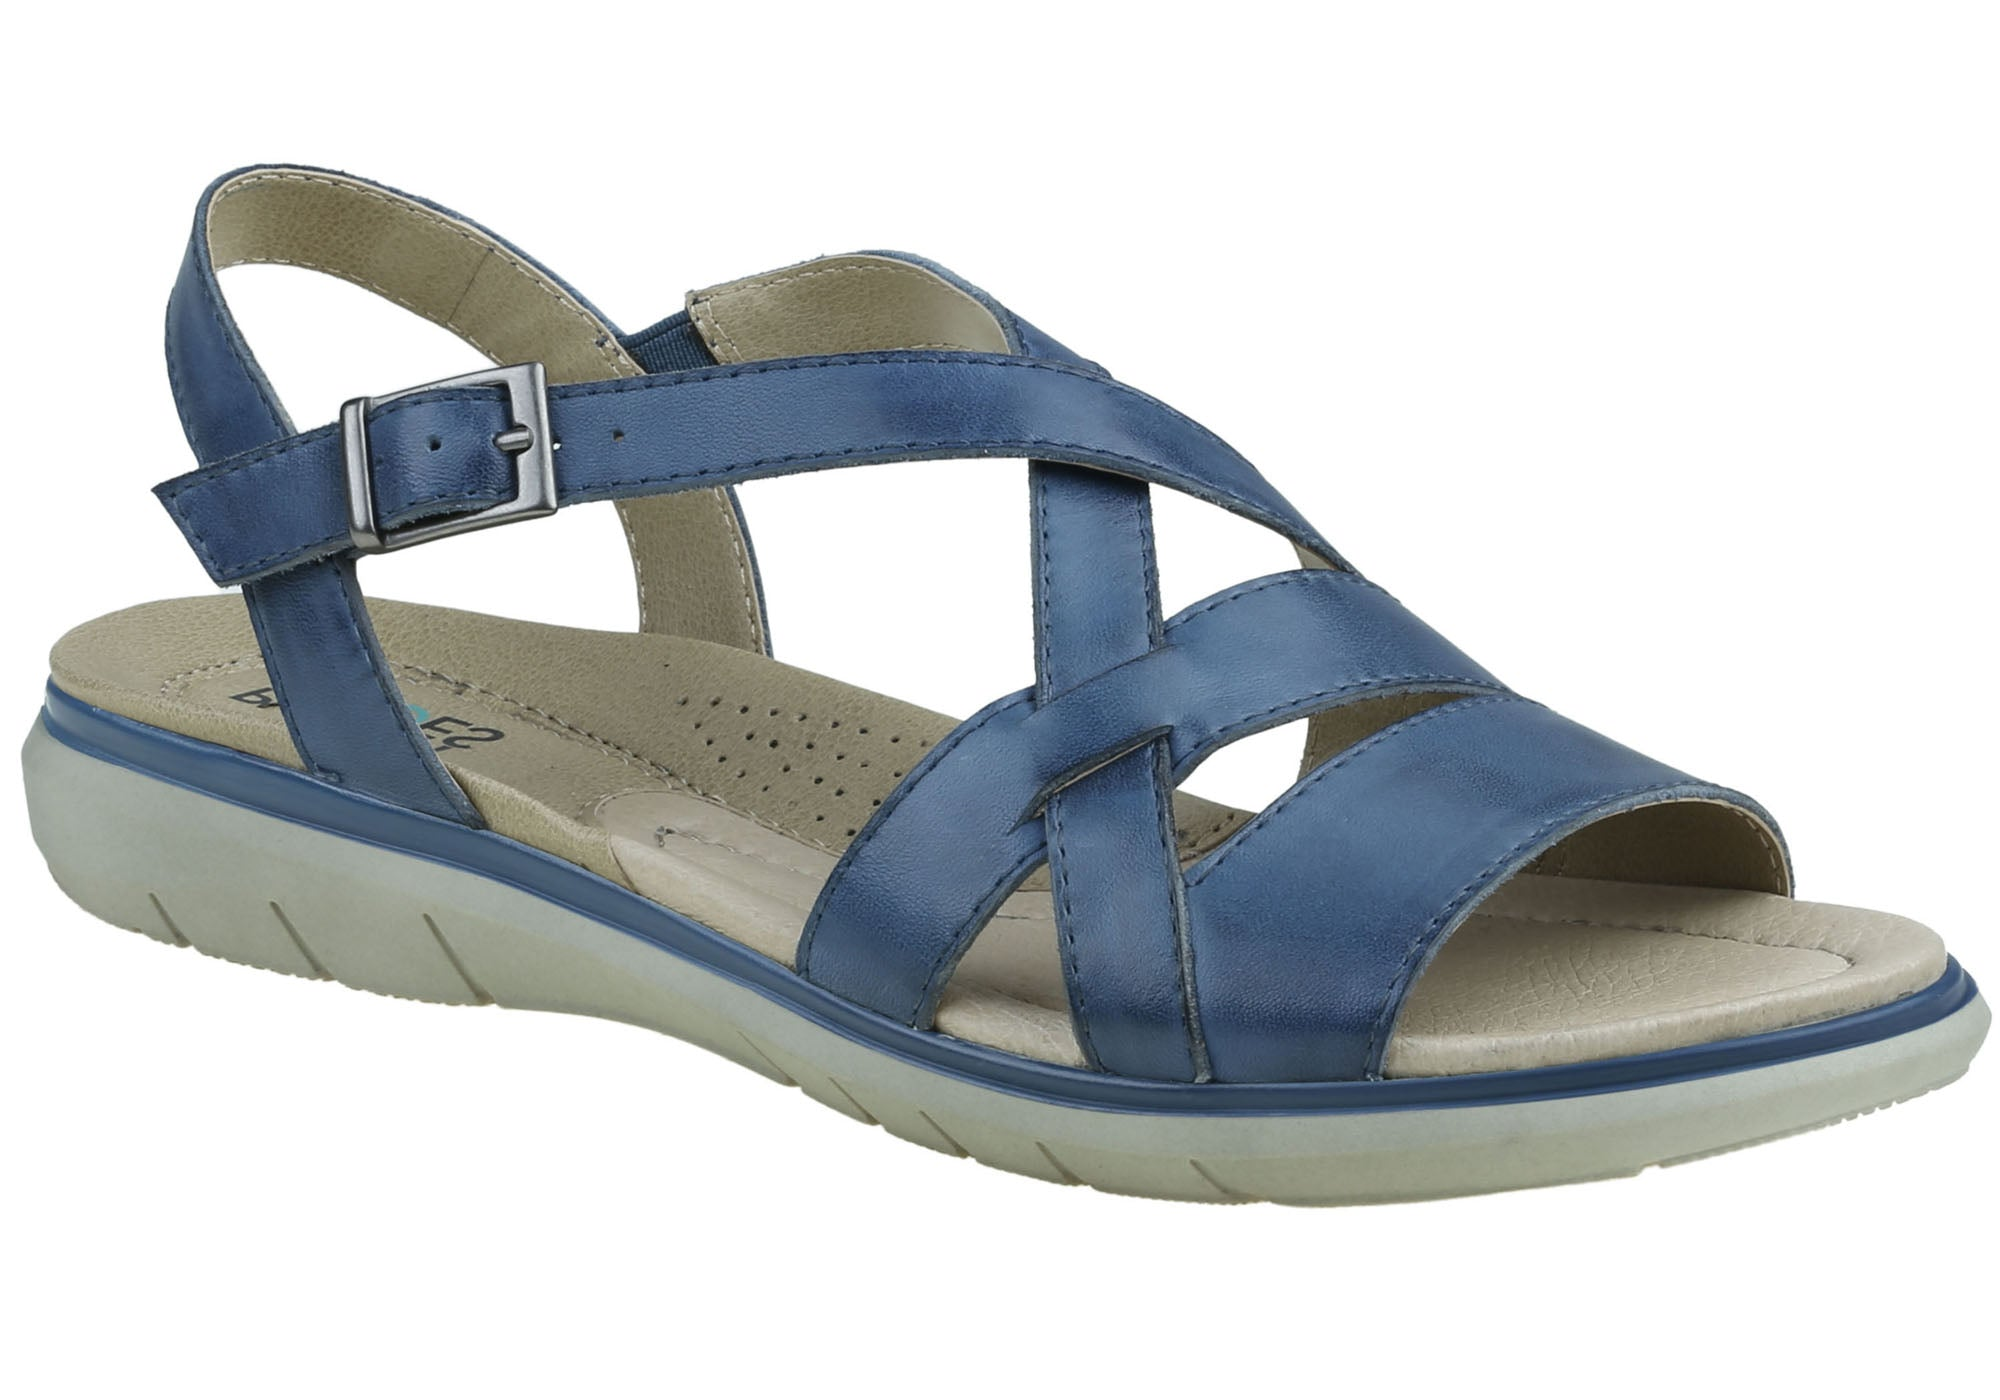 NEW-PLANET-SHOES-LIV-WOMENS-COMFORT-LEATHER-SUPPORTIVE-FLAT-SANDALS